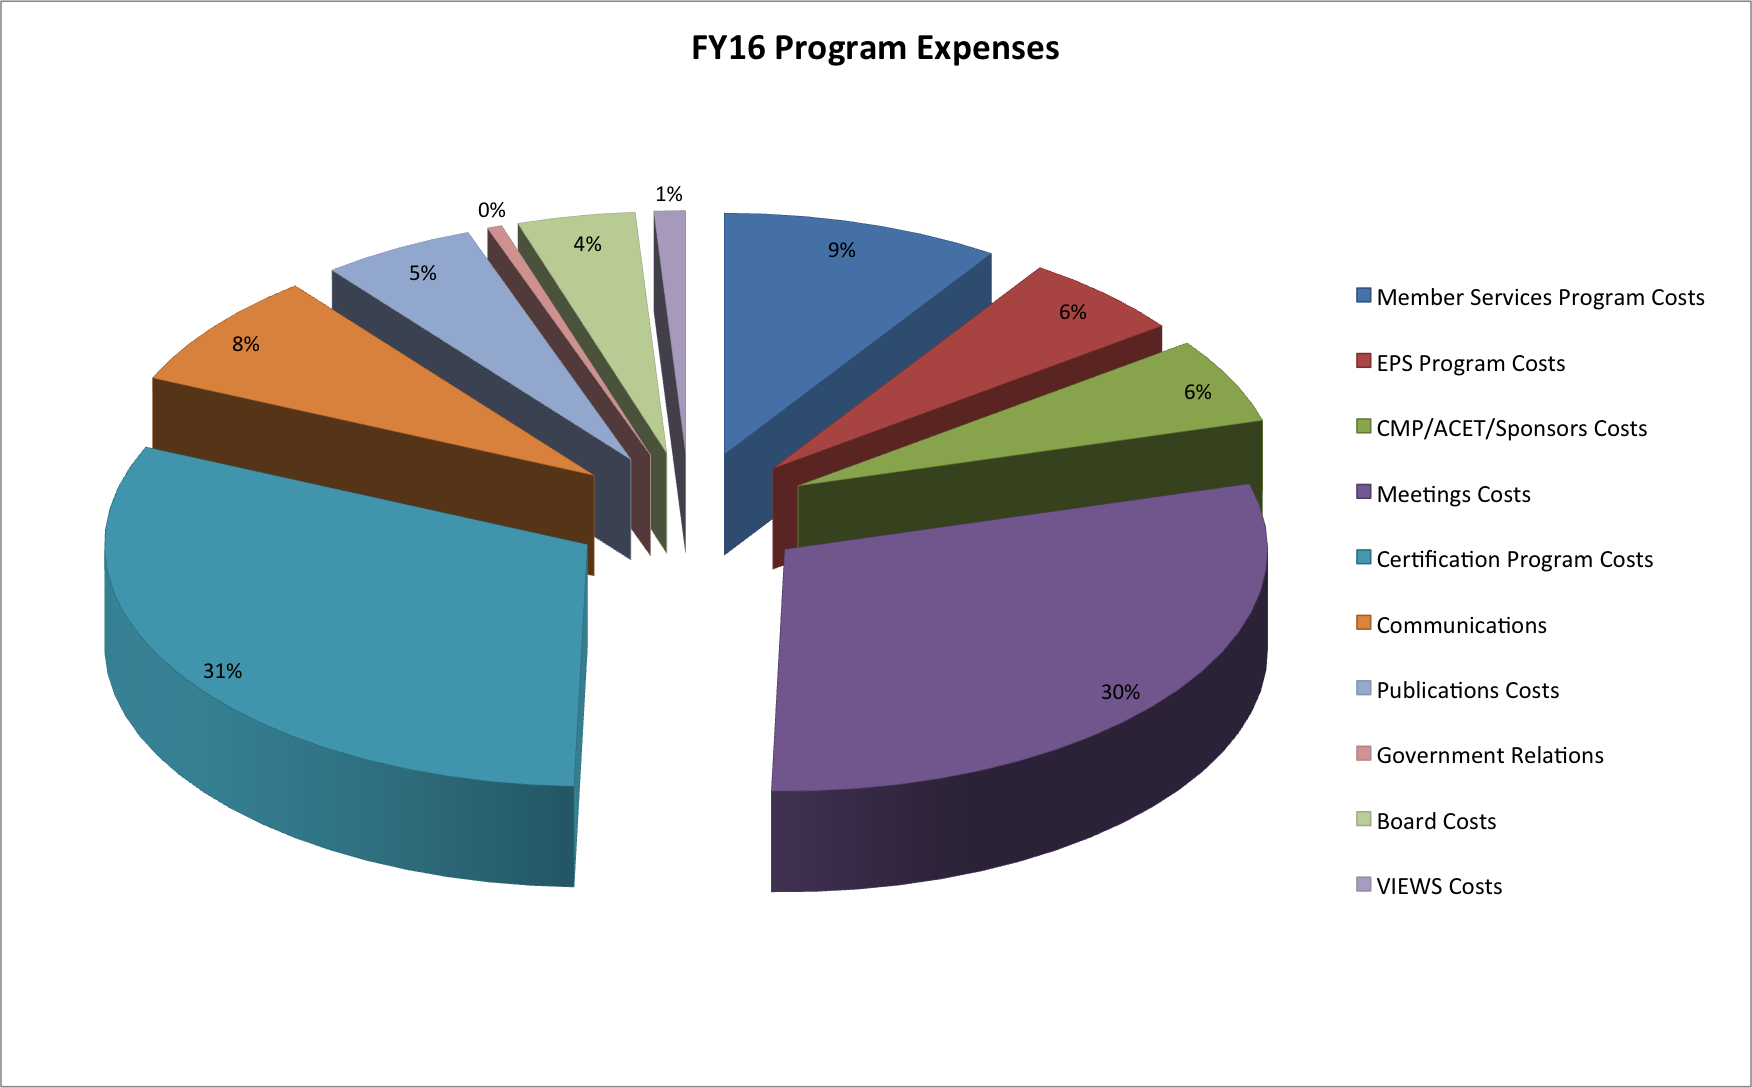 FY16 Program Expenses